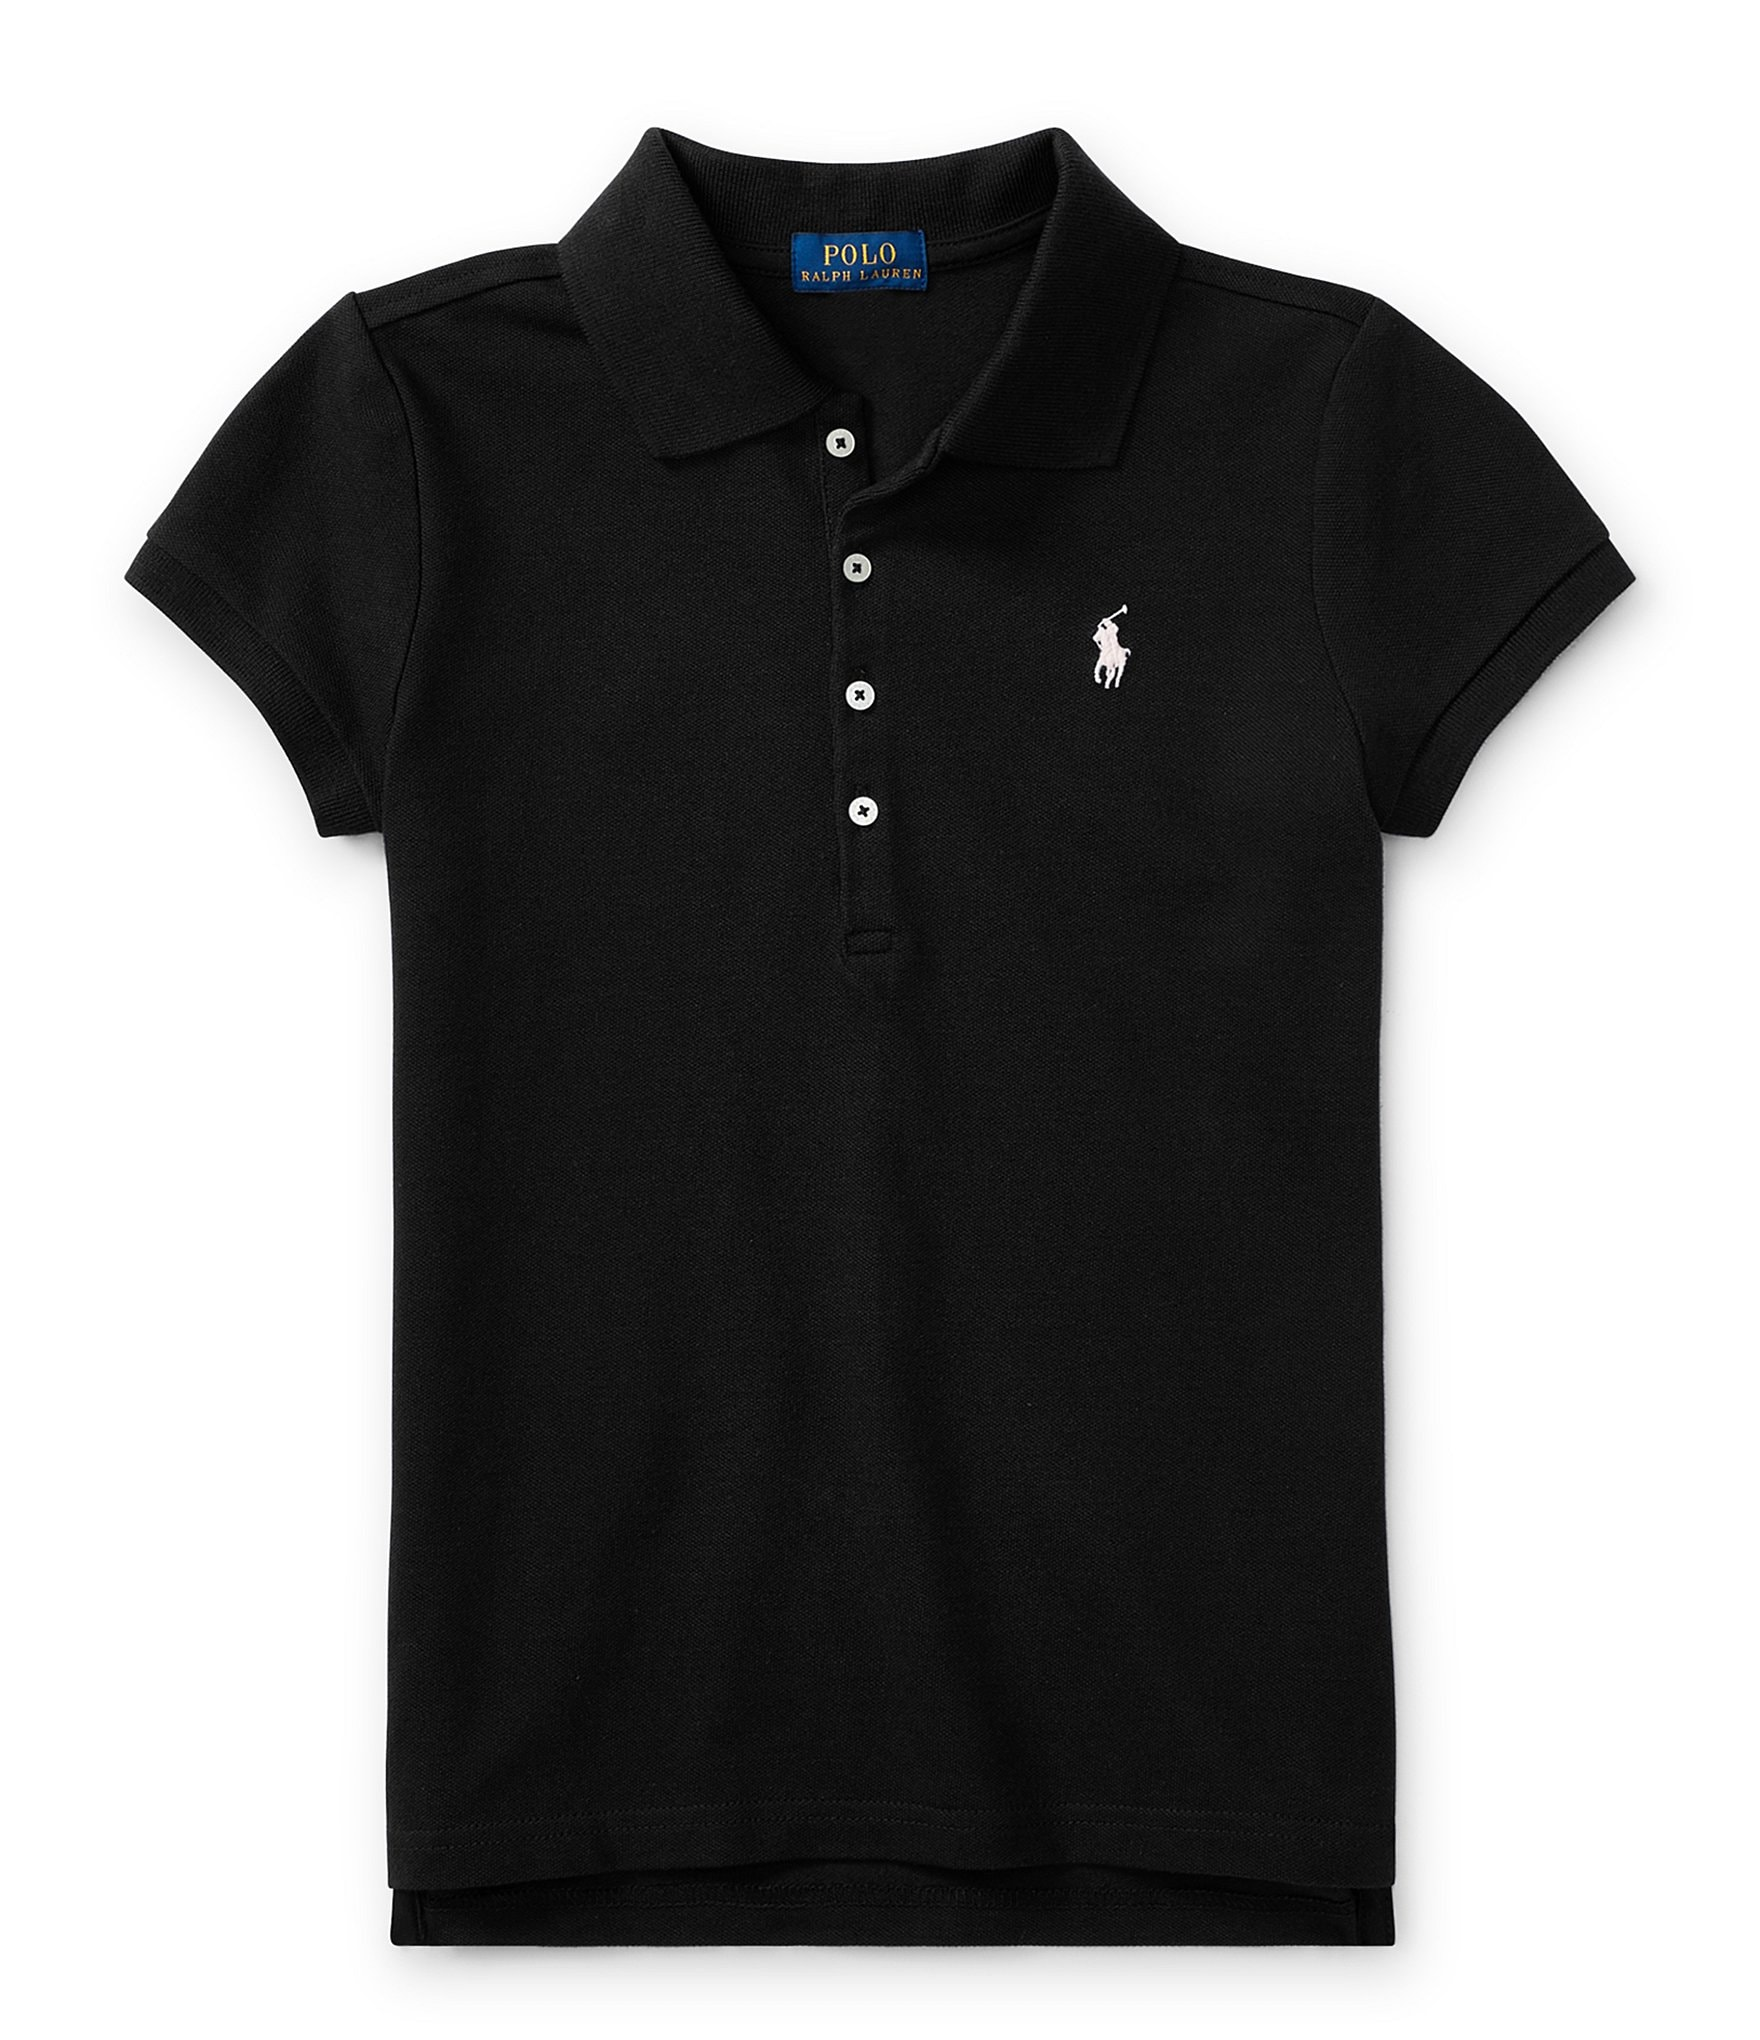 ralph lauren childrenswear big girls 7 16 short sleeve mesh polo shirt dillards. Black Bedroom Furniture Sets. Home Design Ideas